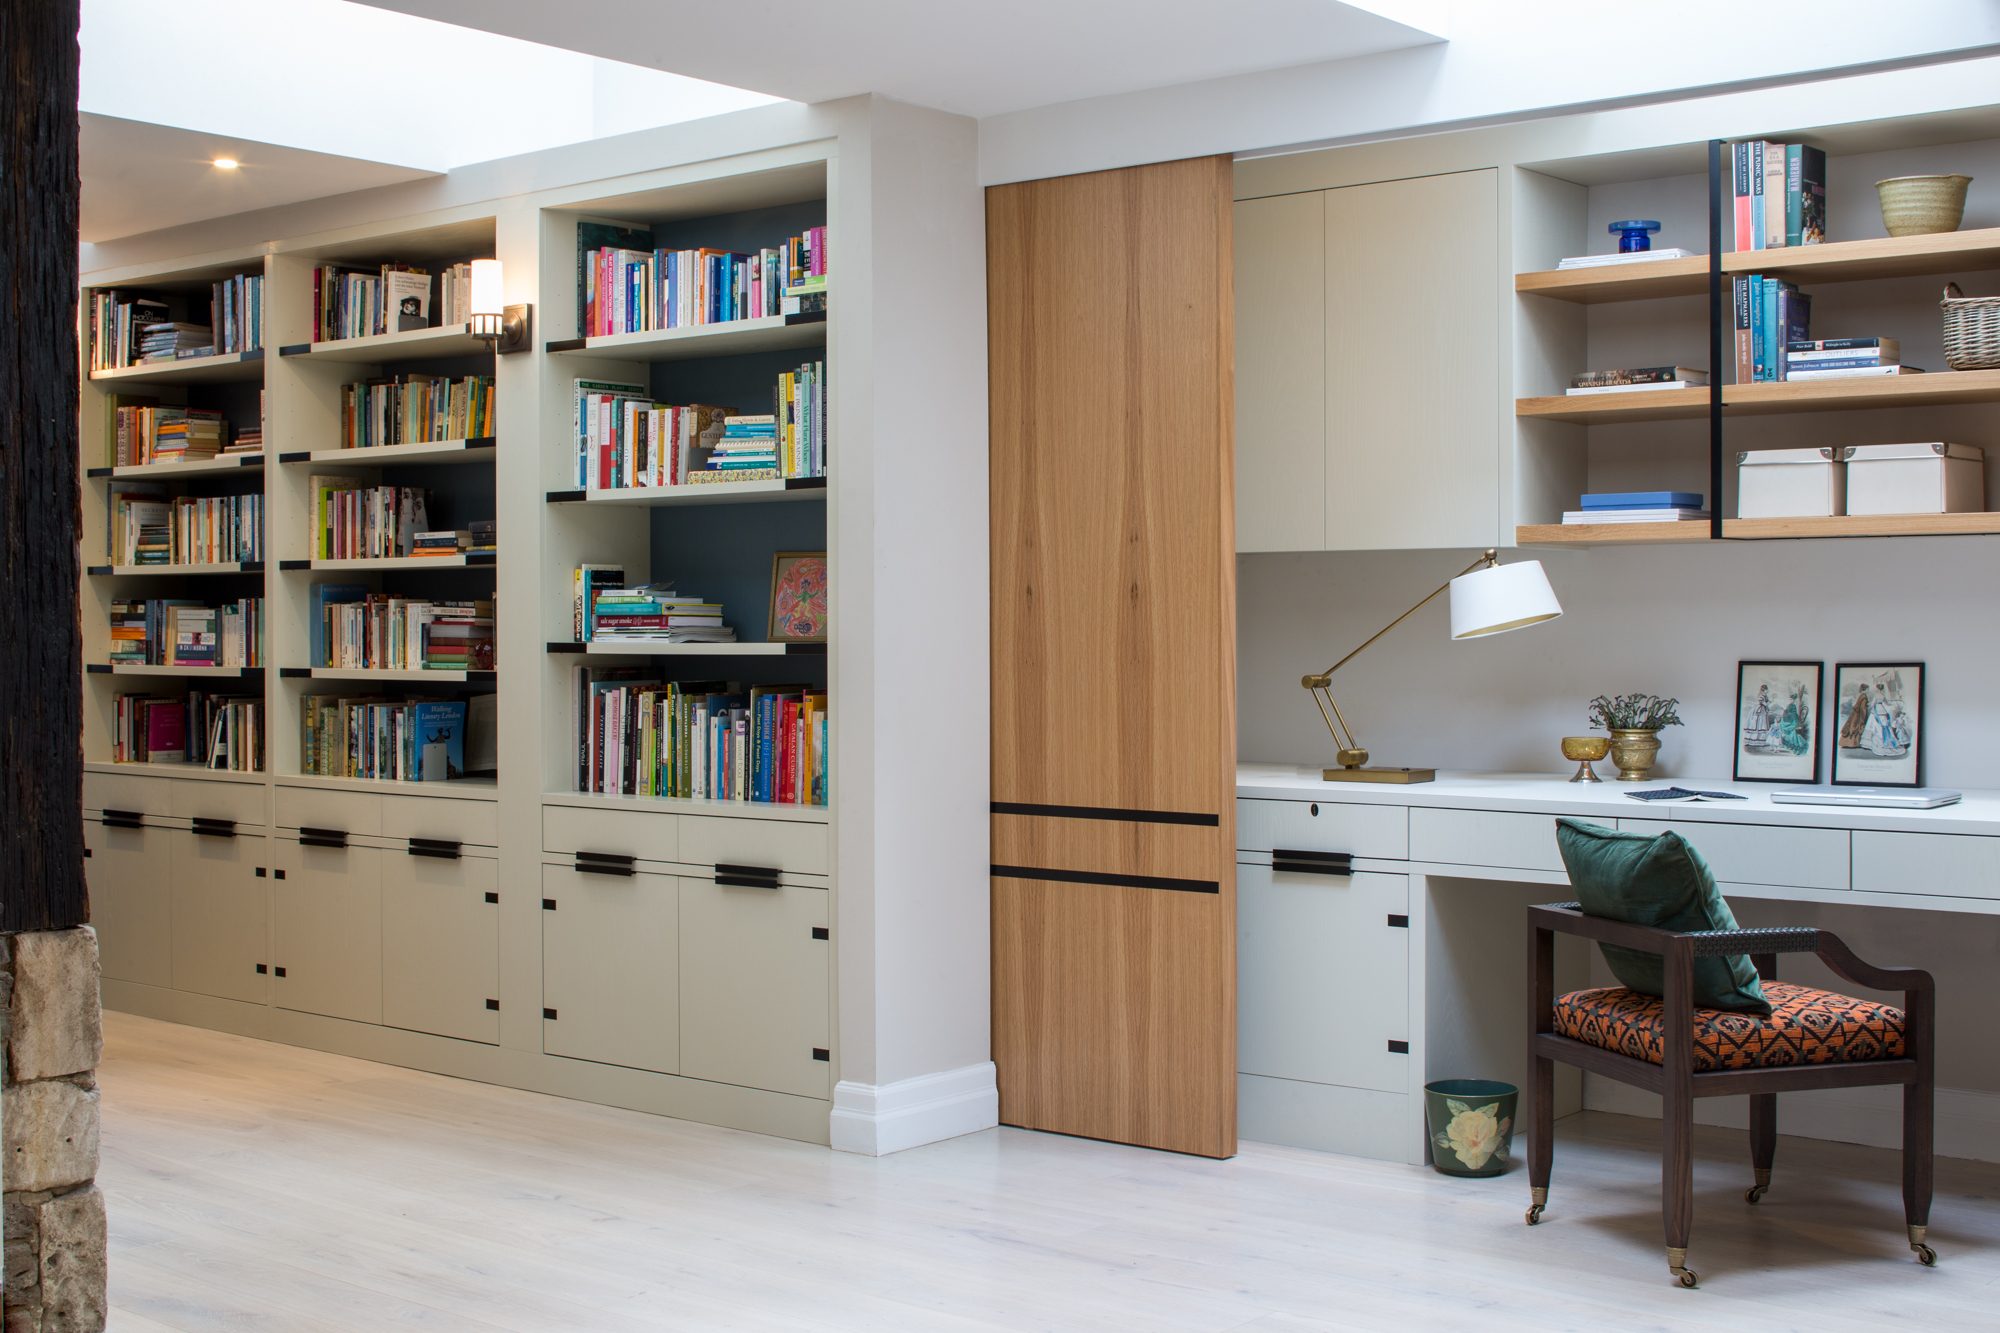 The desk space extends across the full length of the hallway and can be conveniently hidden from view by the large timber sliding doors.